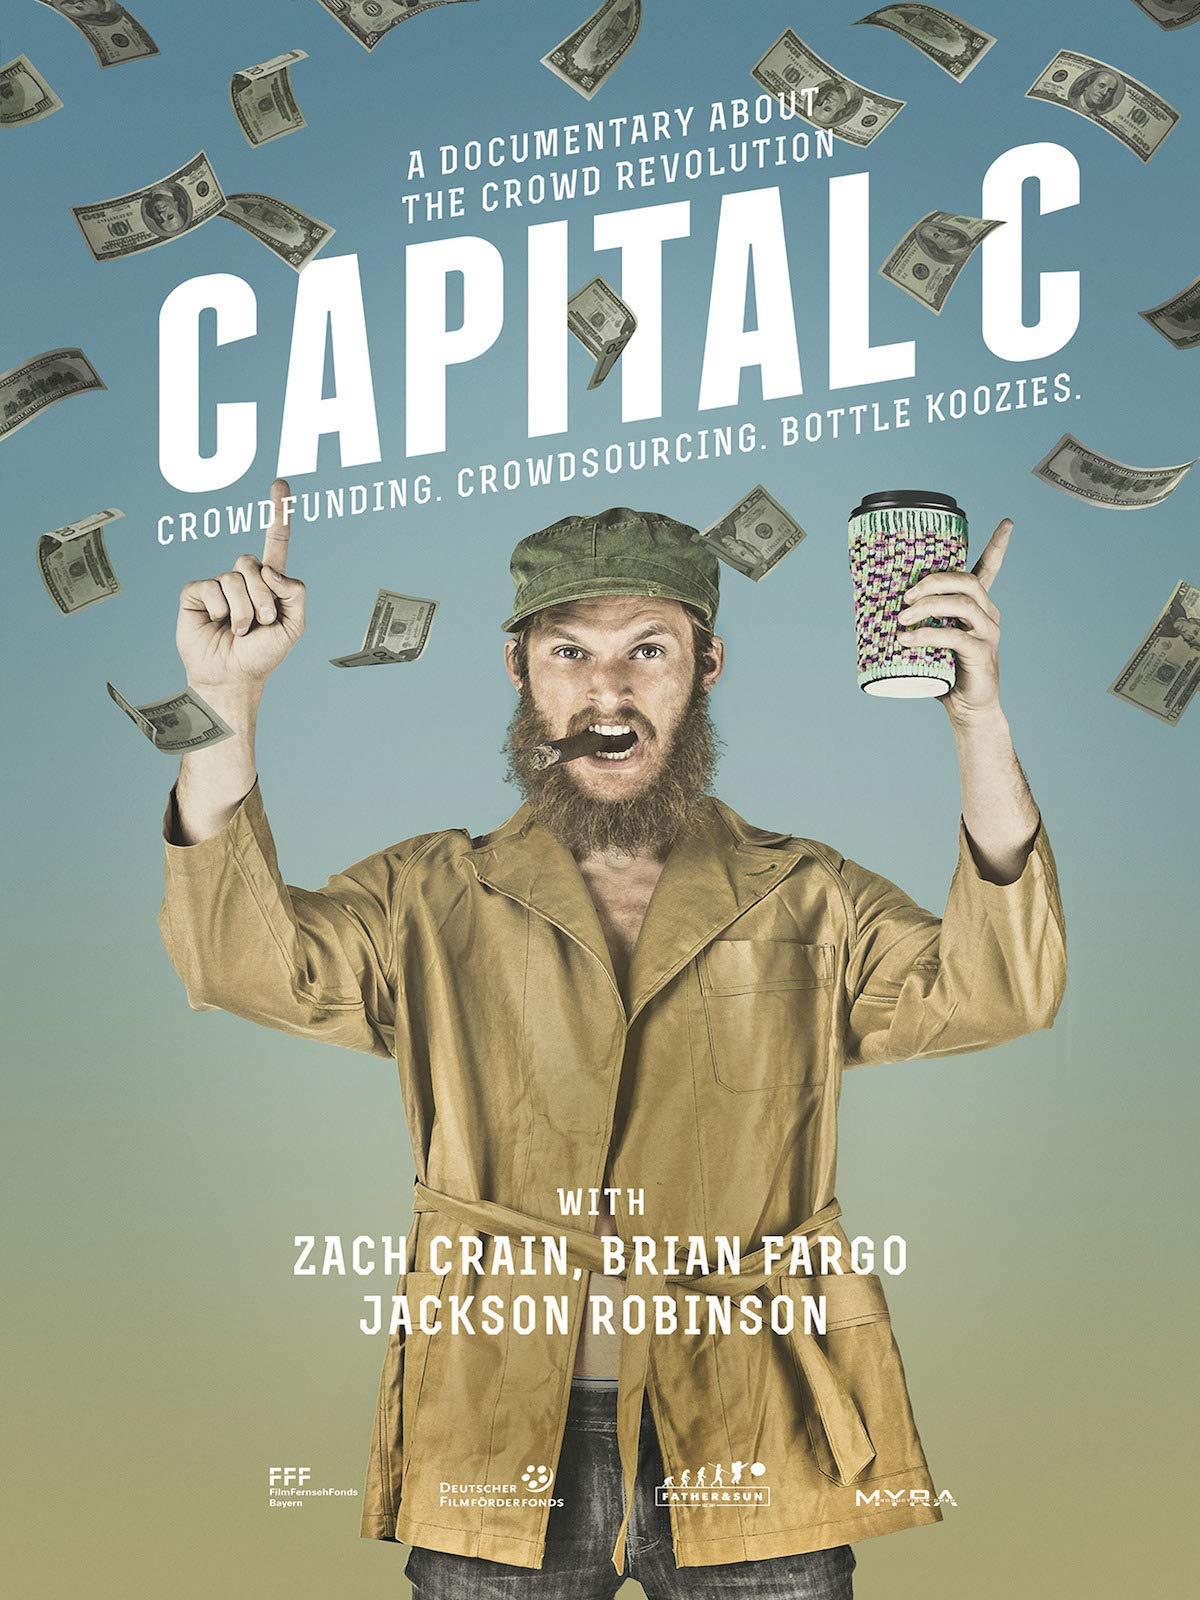 Capital C: The Crowdfunding Revolution